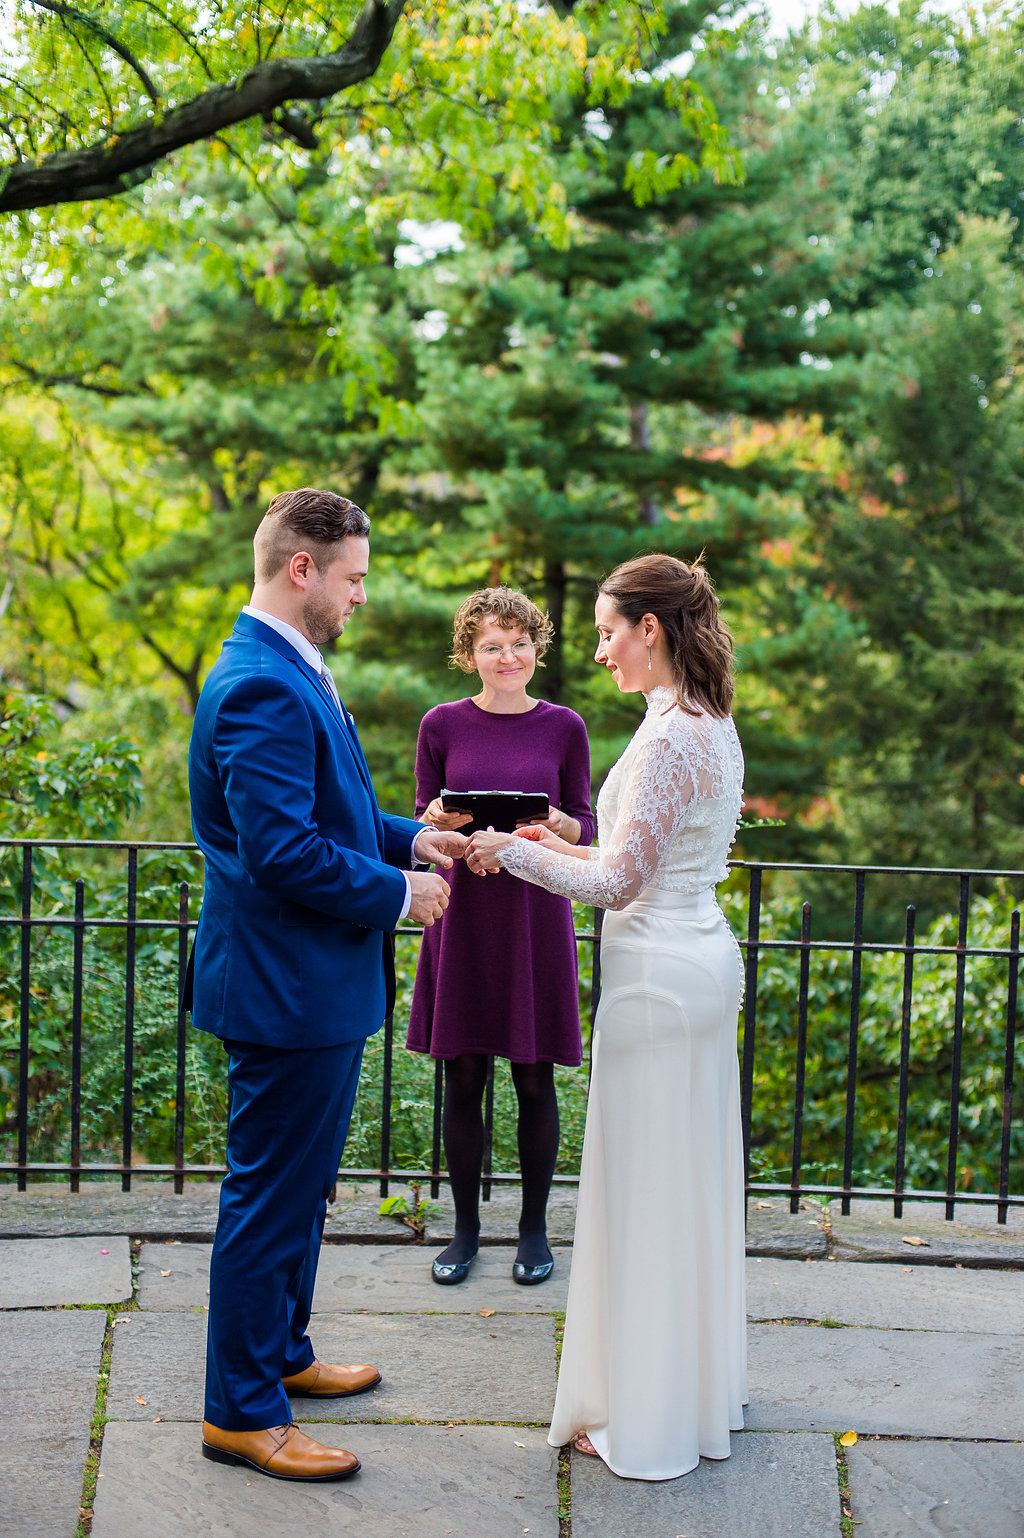 Wedding Officiant in Central Park's Shakespeare Garden